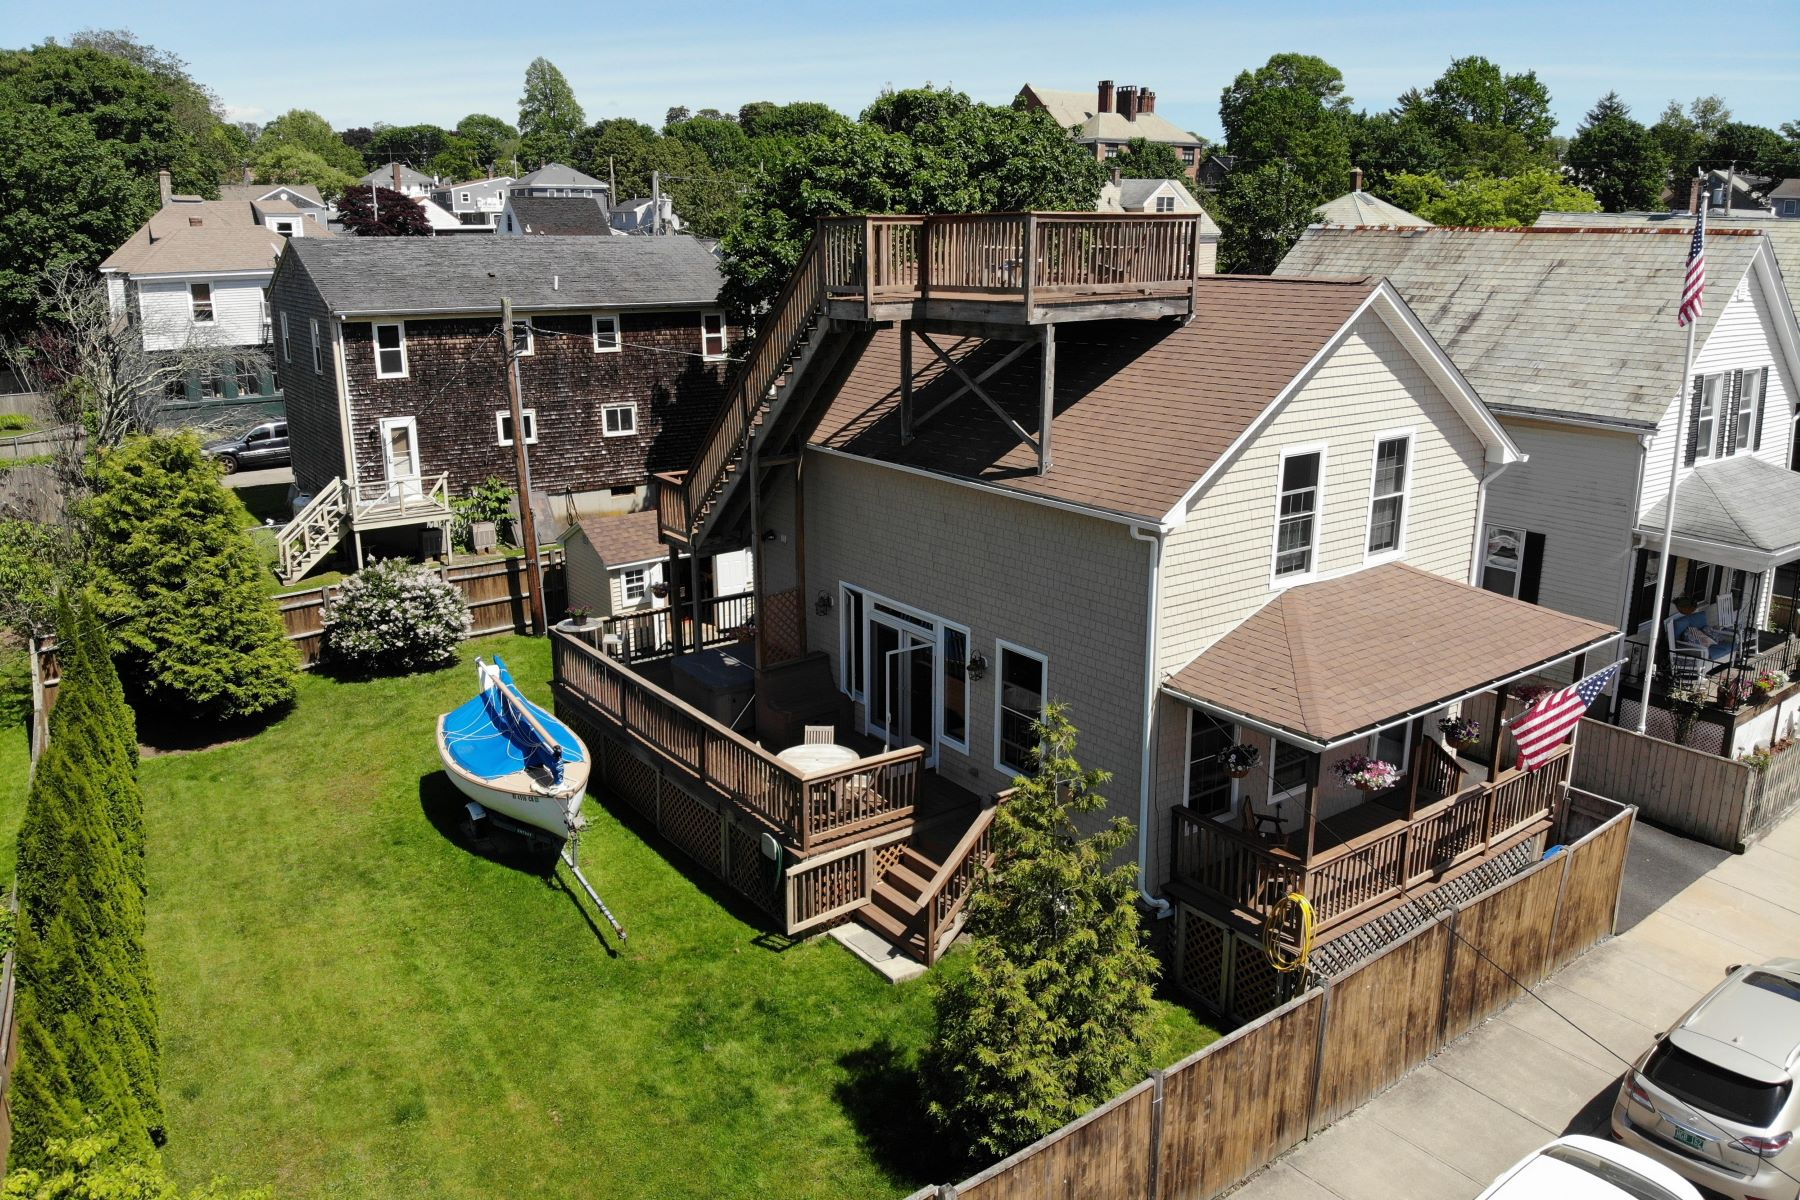 Single Family Homes for Sale at Renaissance District Cottage 65 Hall Avenue Newport, Rhode Island 02840 United States